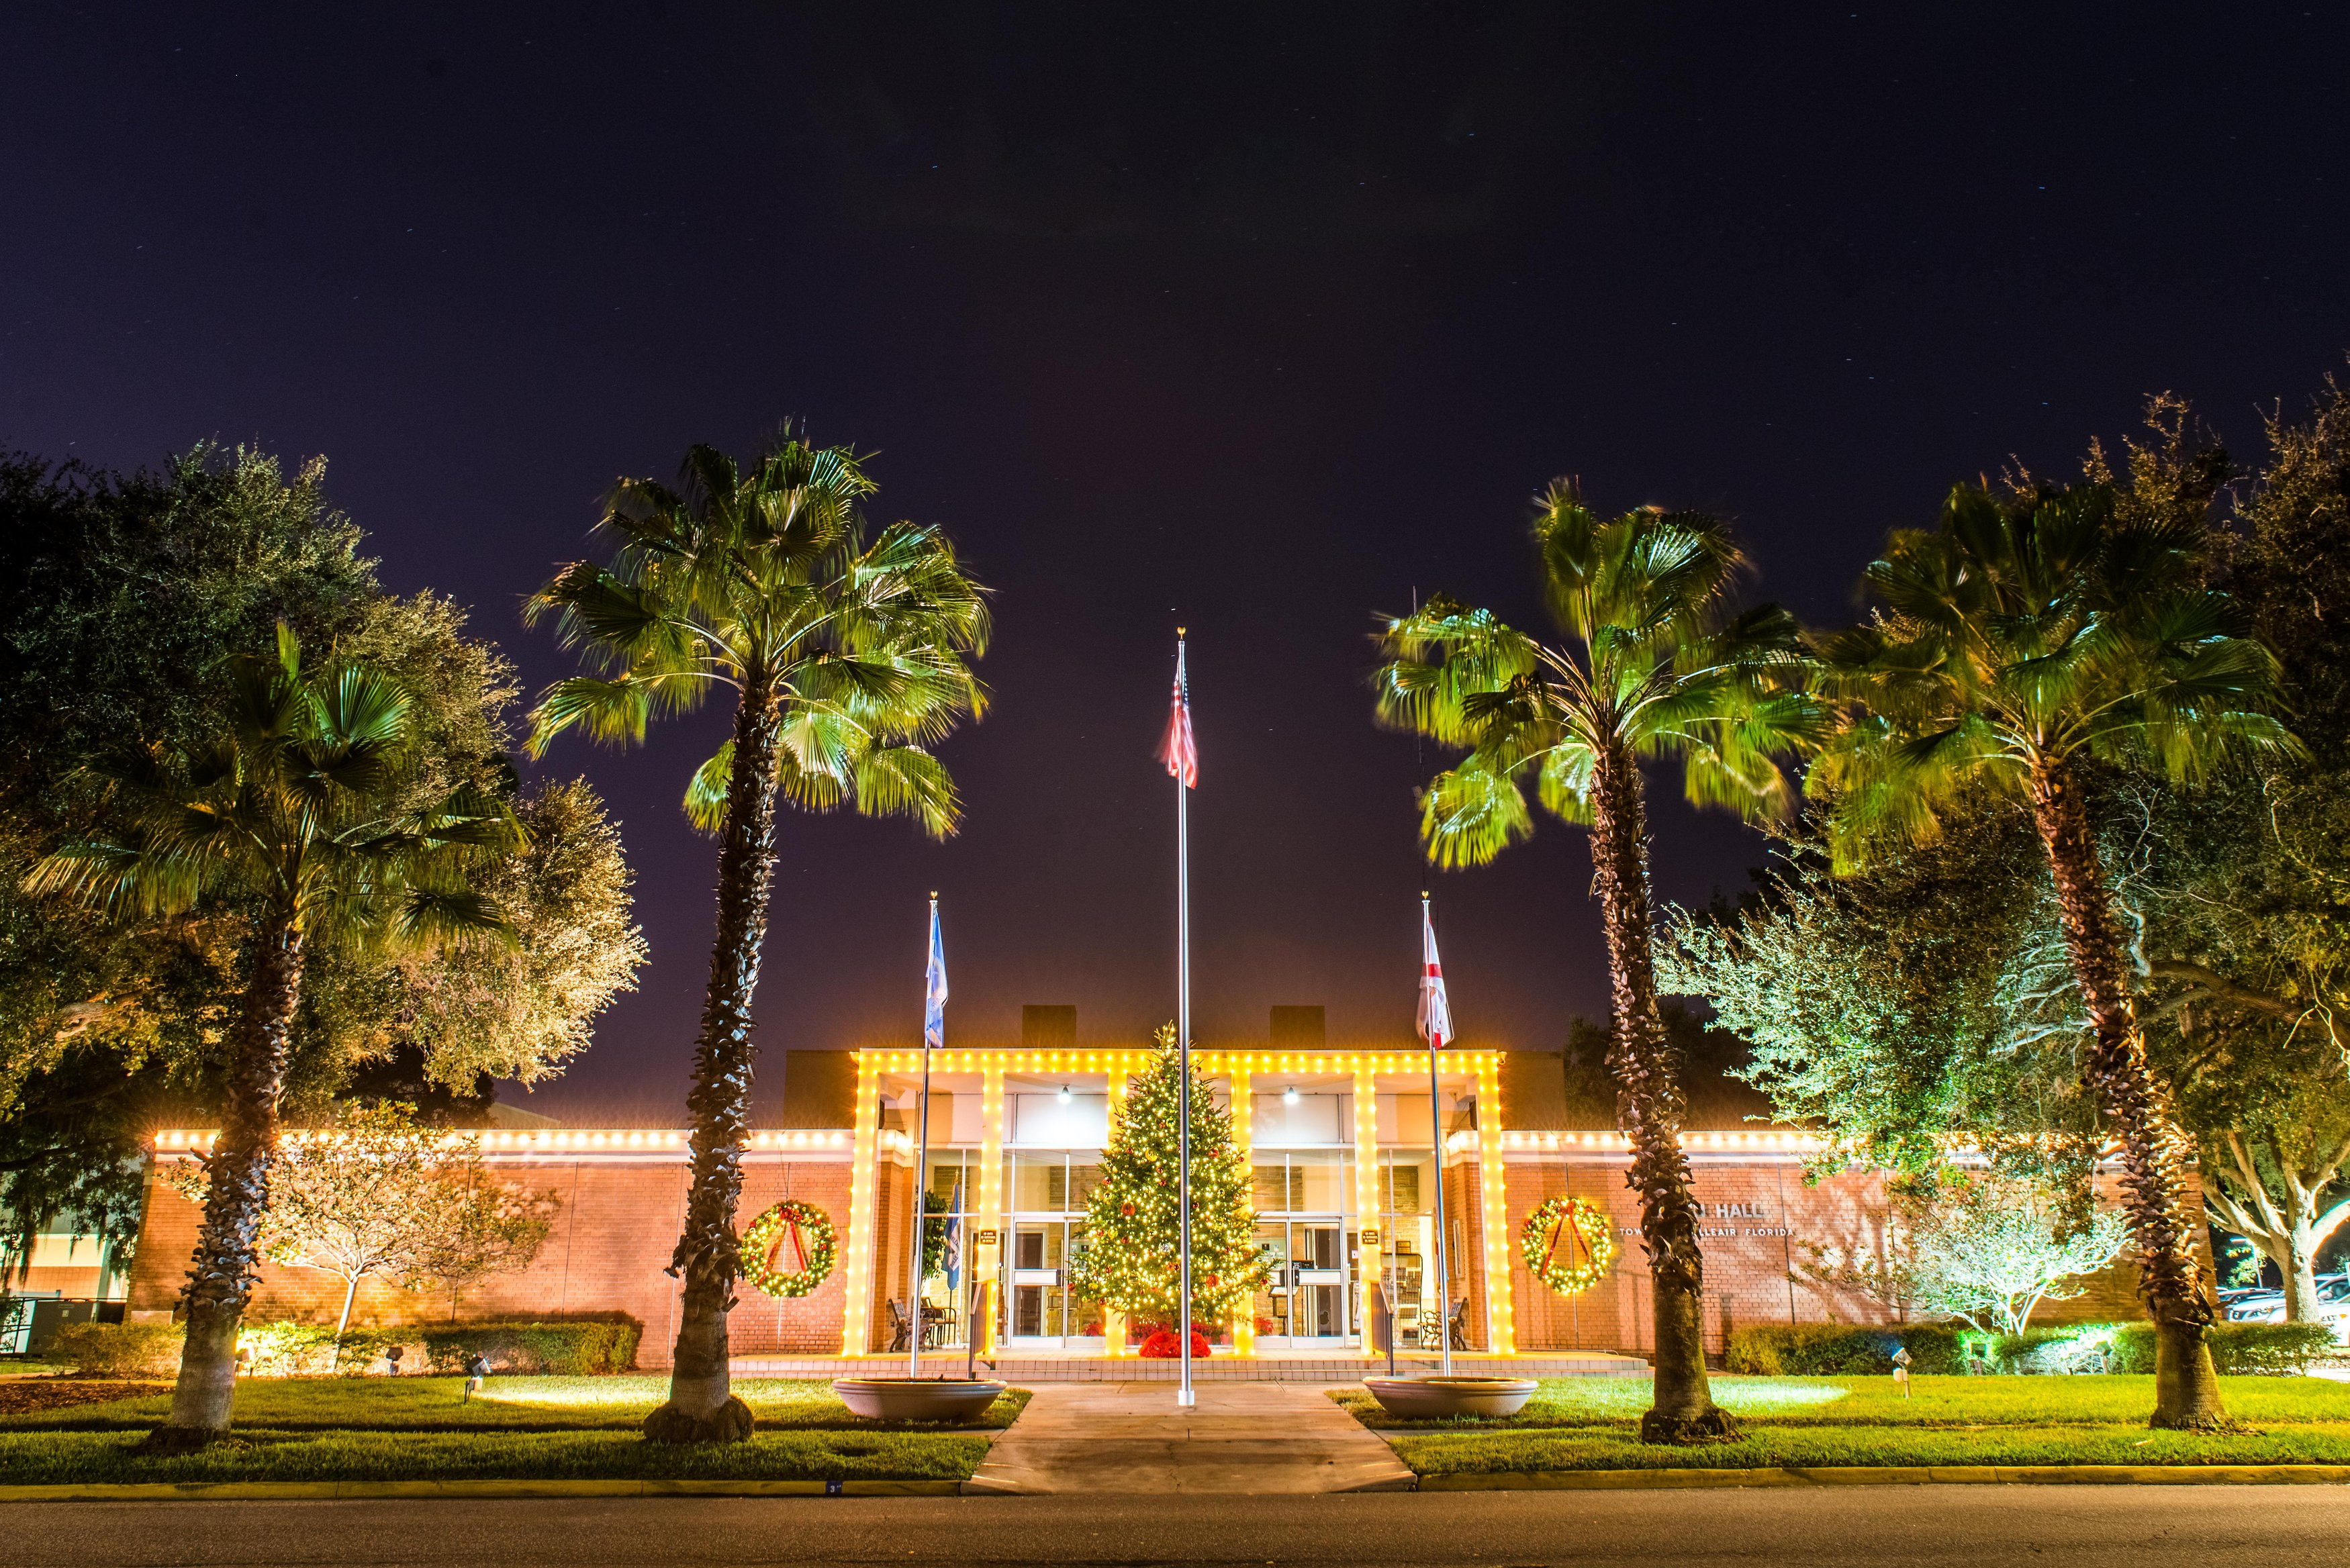 Belleair's Town Hall building light up with holiday lighting from a view across the street